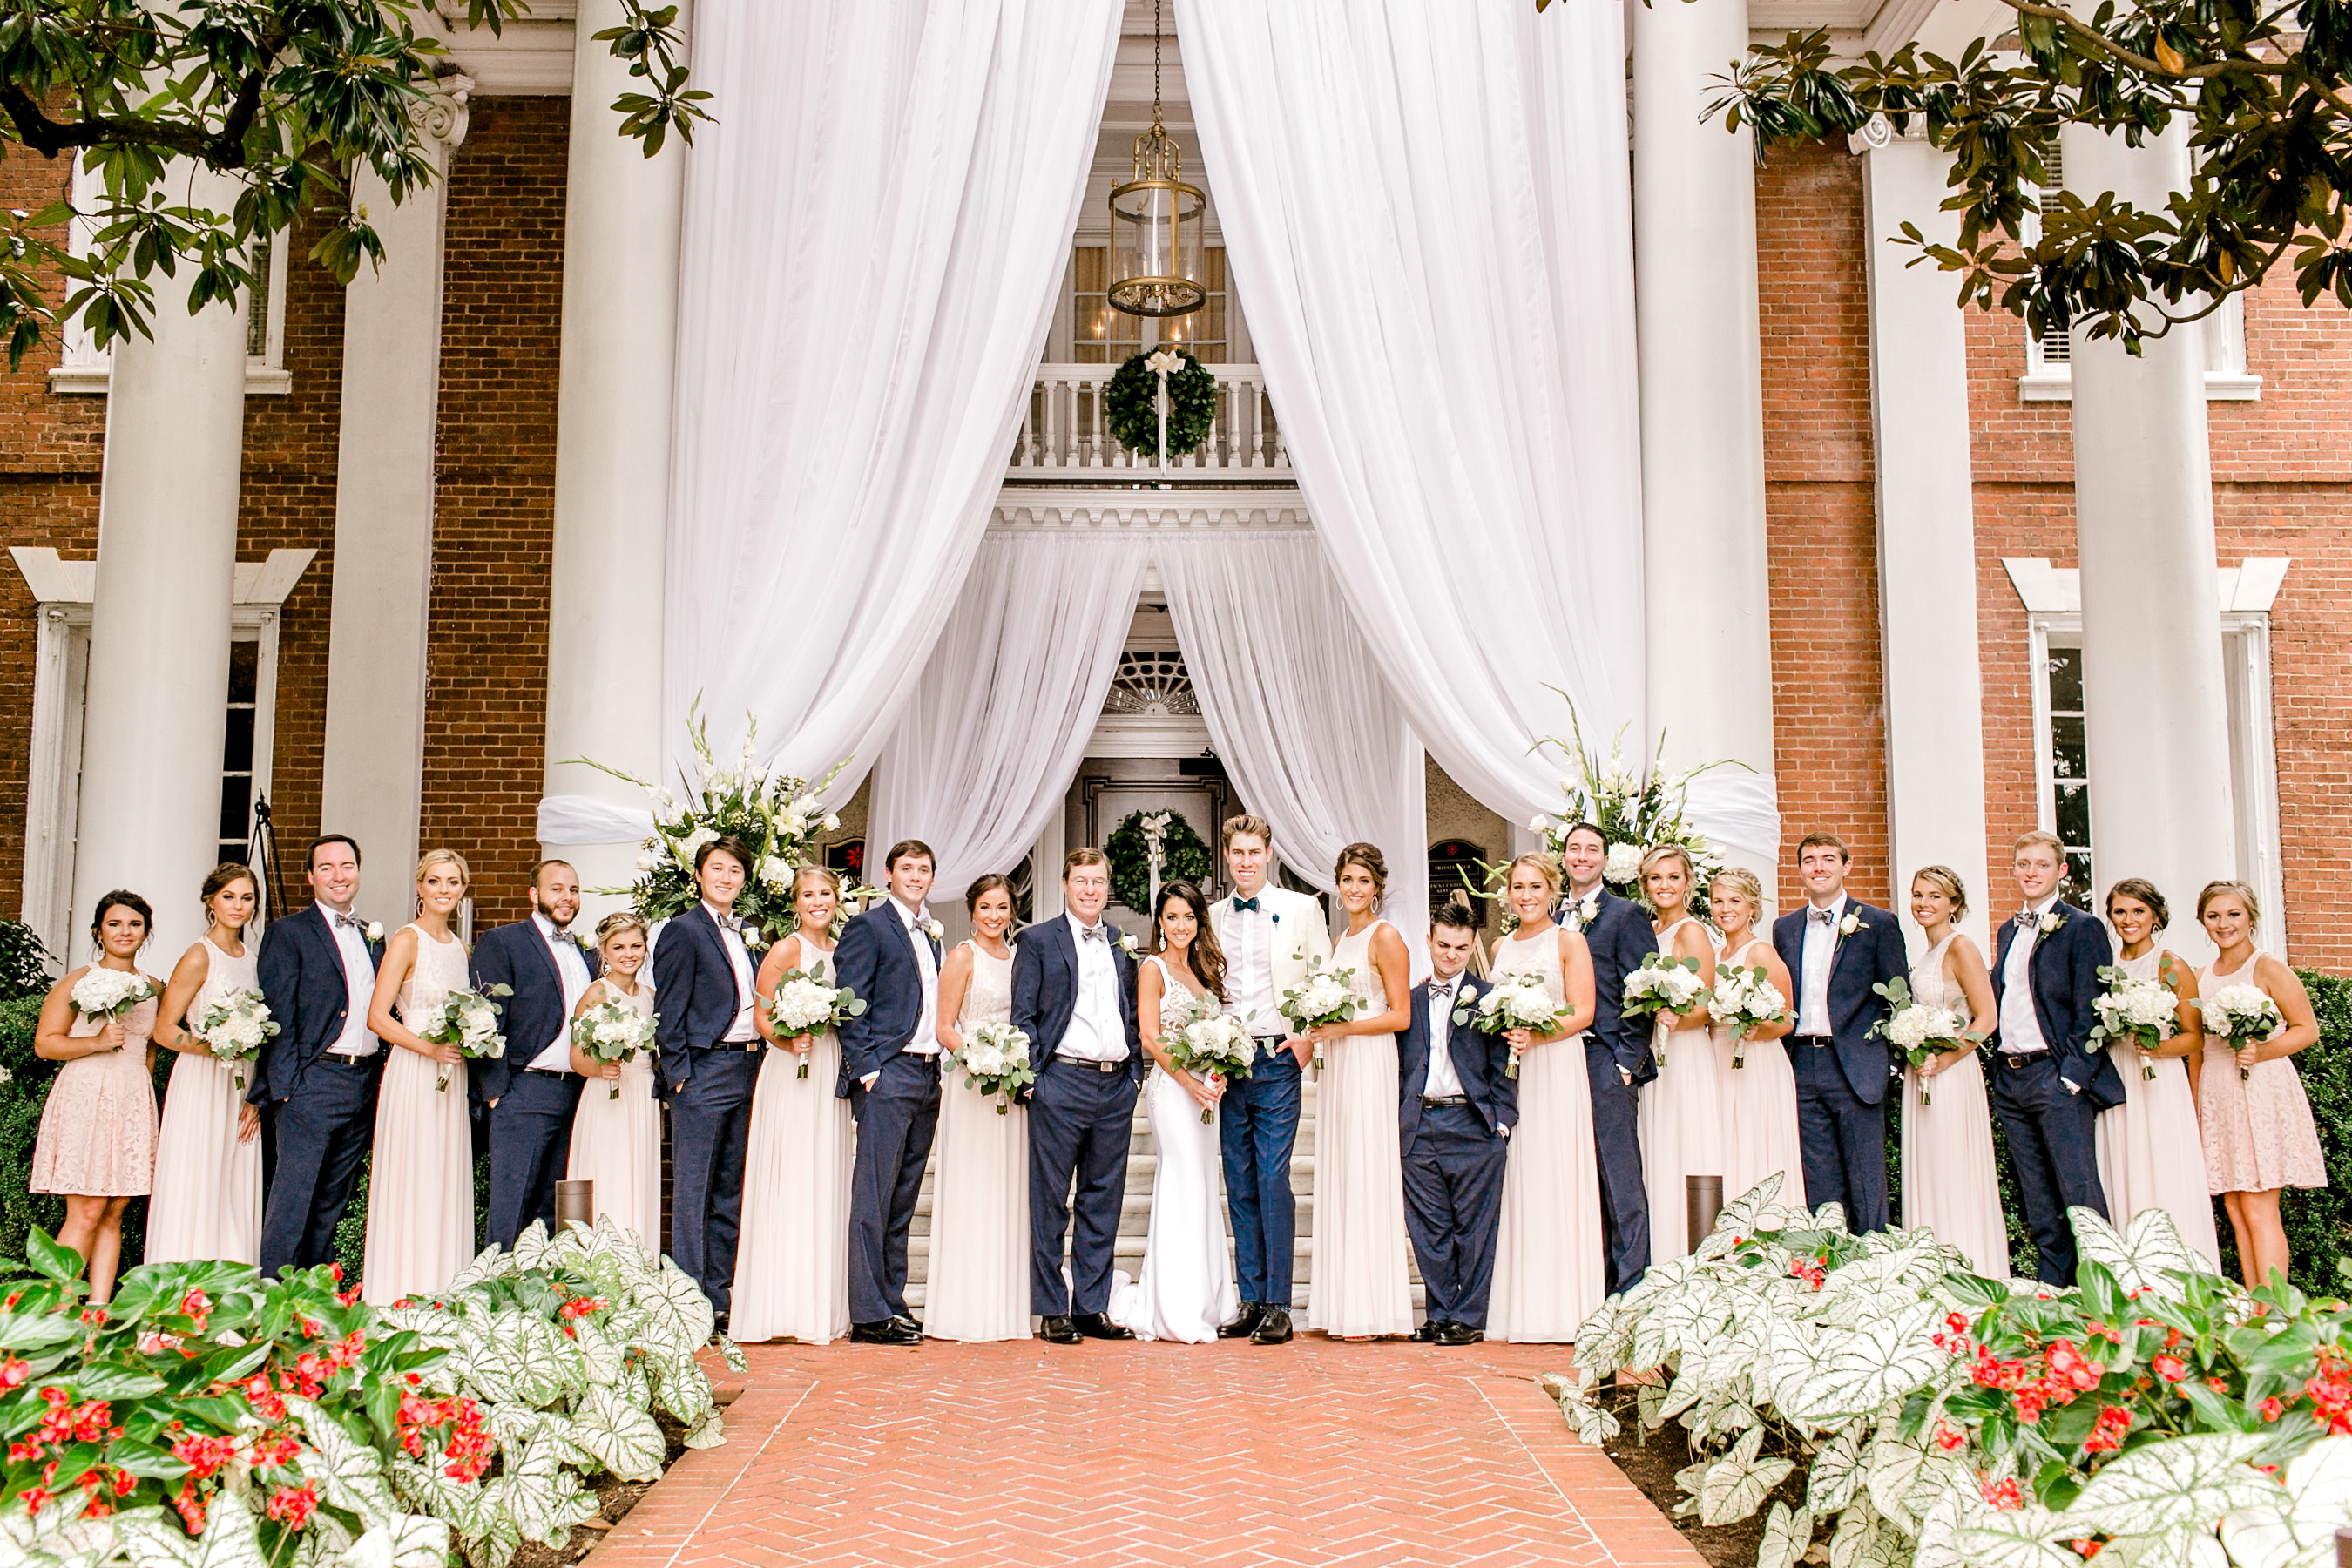 blush bridesmaids and groomsmen in navy suites